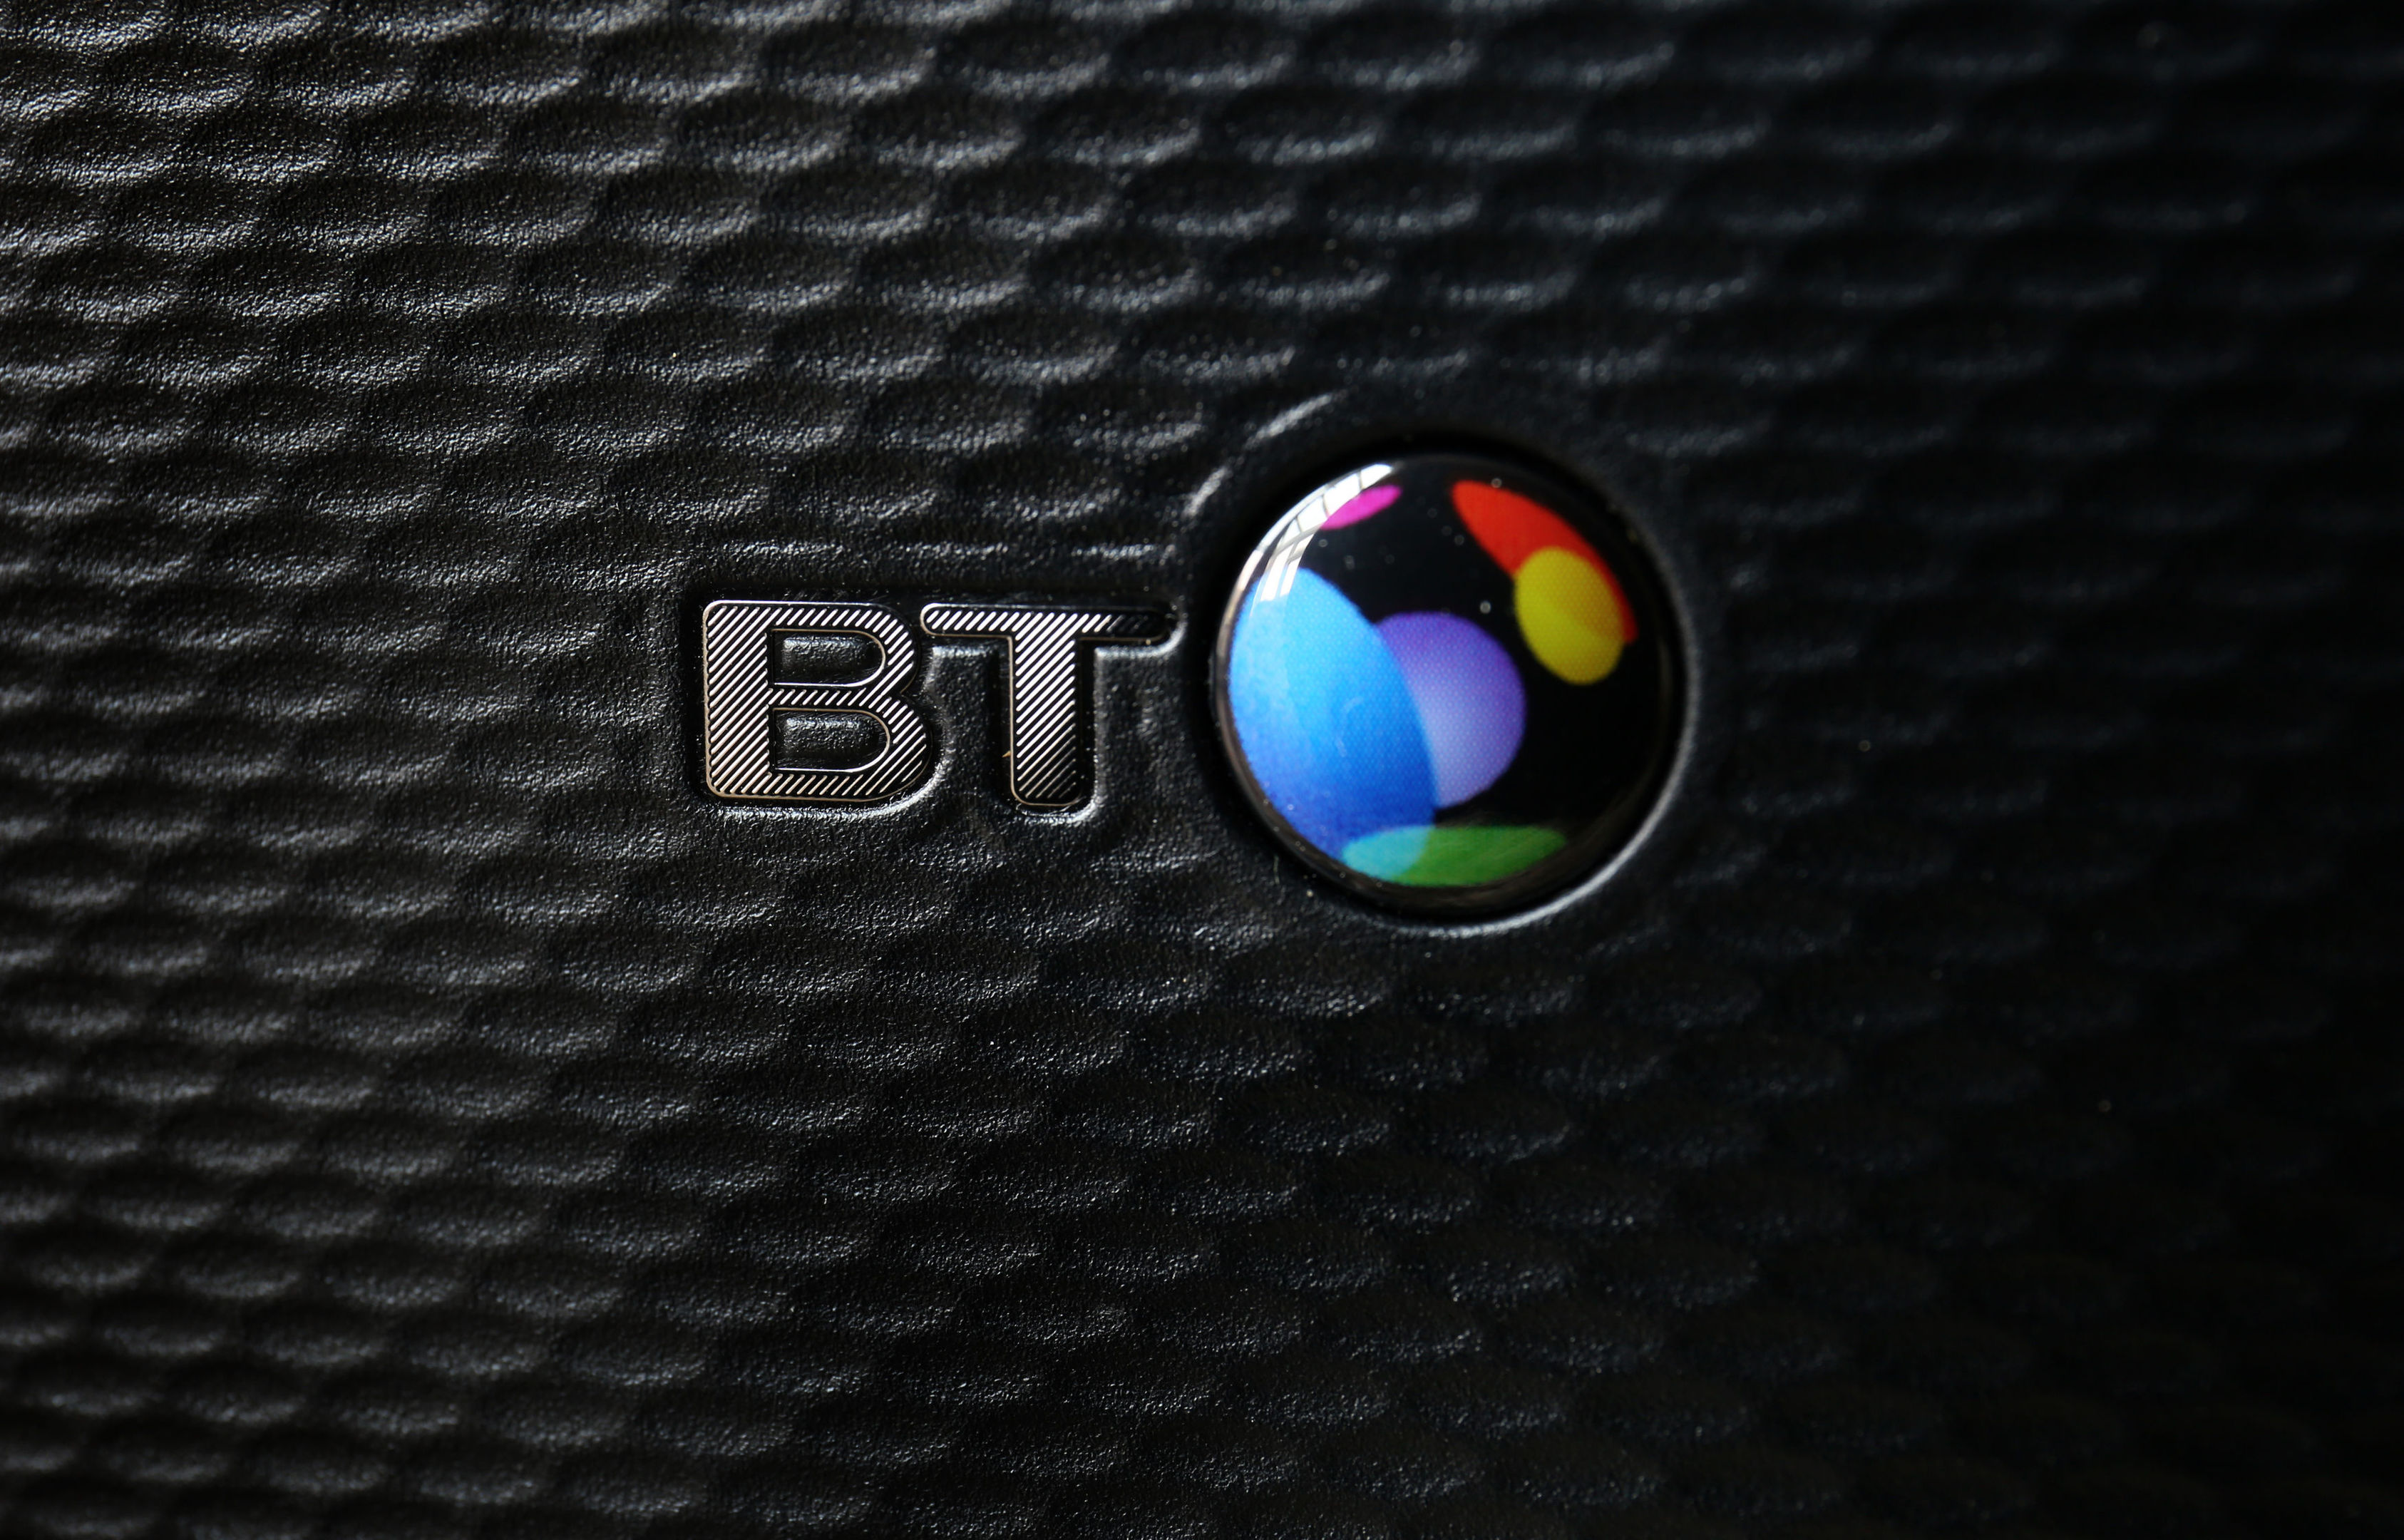 BT received the most customer complaints for its broadband and pay TV services, according to a quarterly table by regulator Ofcom. (Chris Radburn/PA Wire)